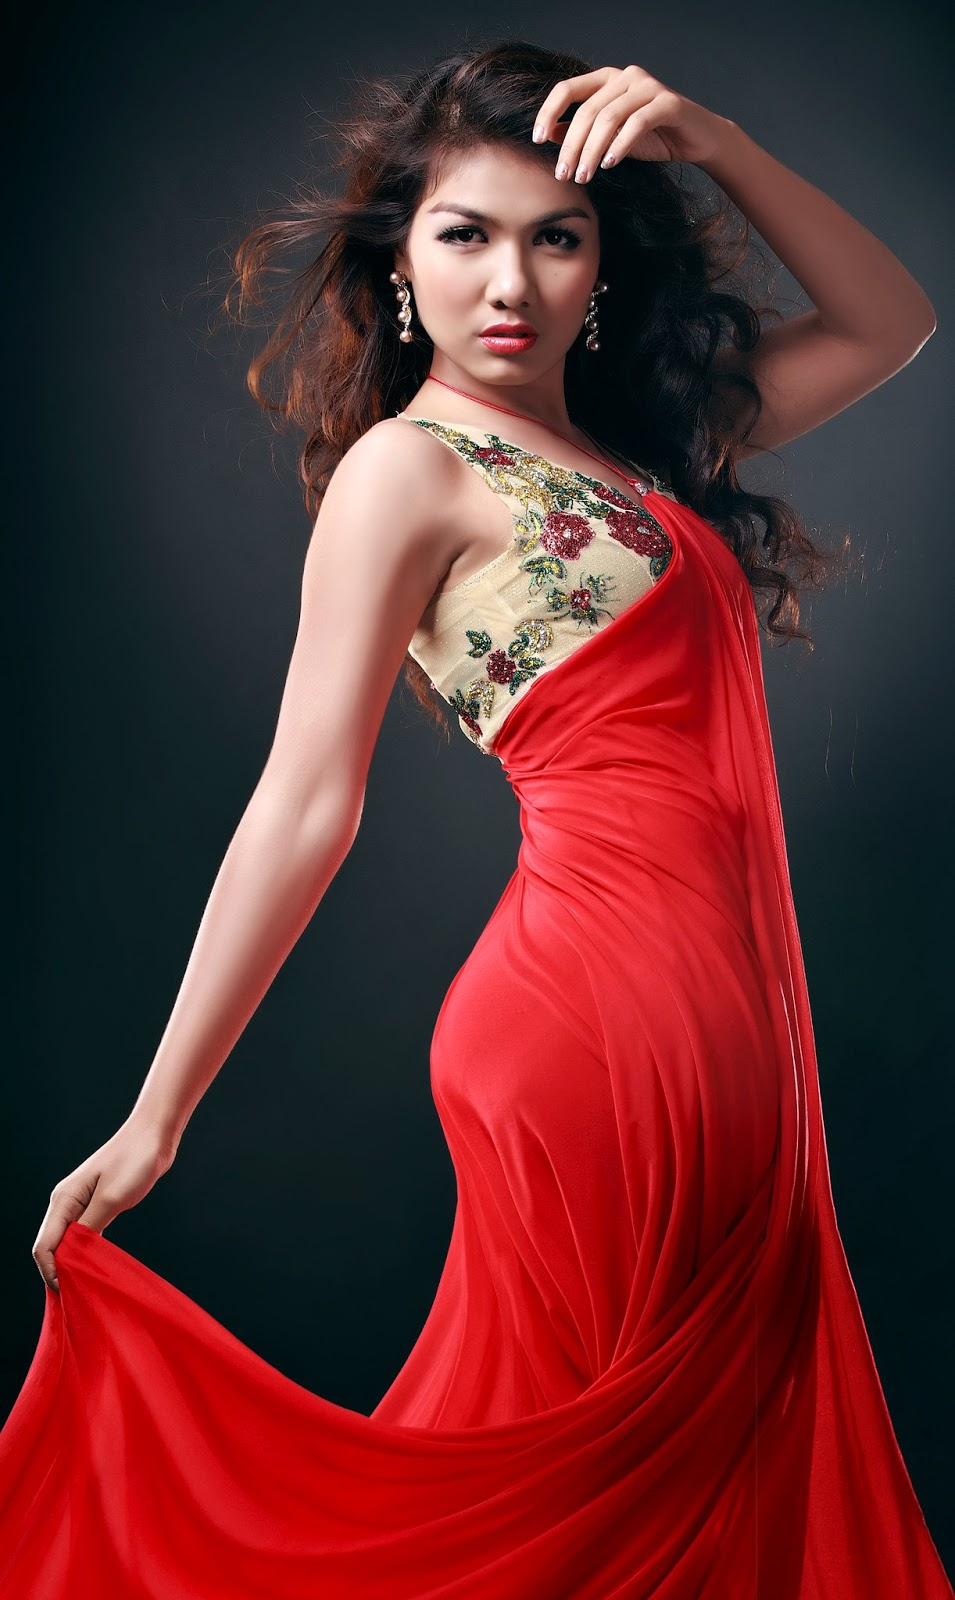 Myanmar Hot Model Hnin Pwint Akare With Strapless Fashion